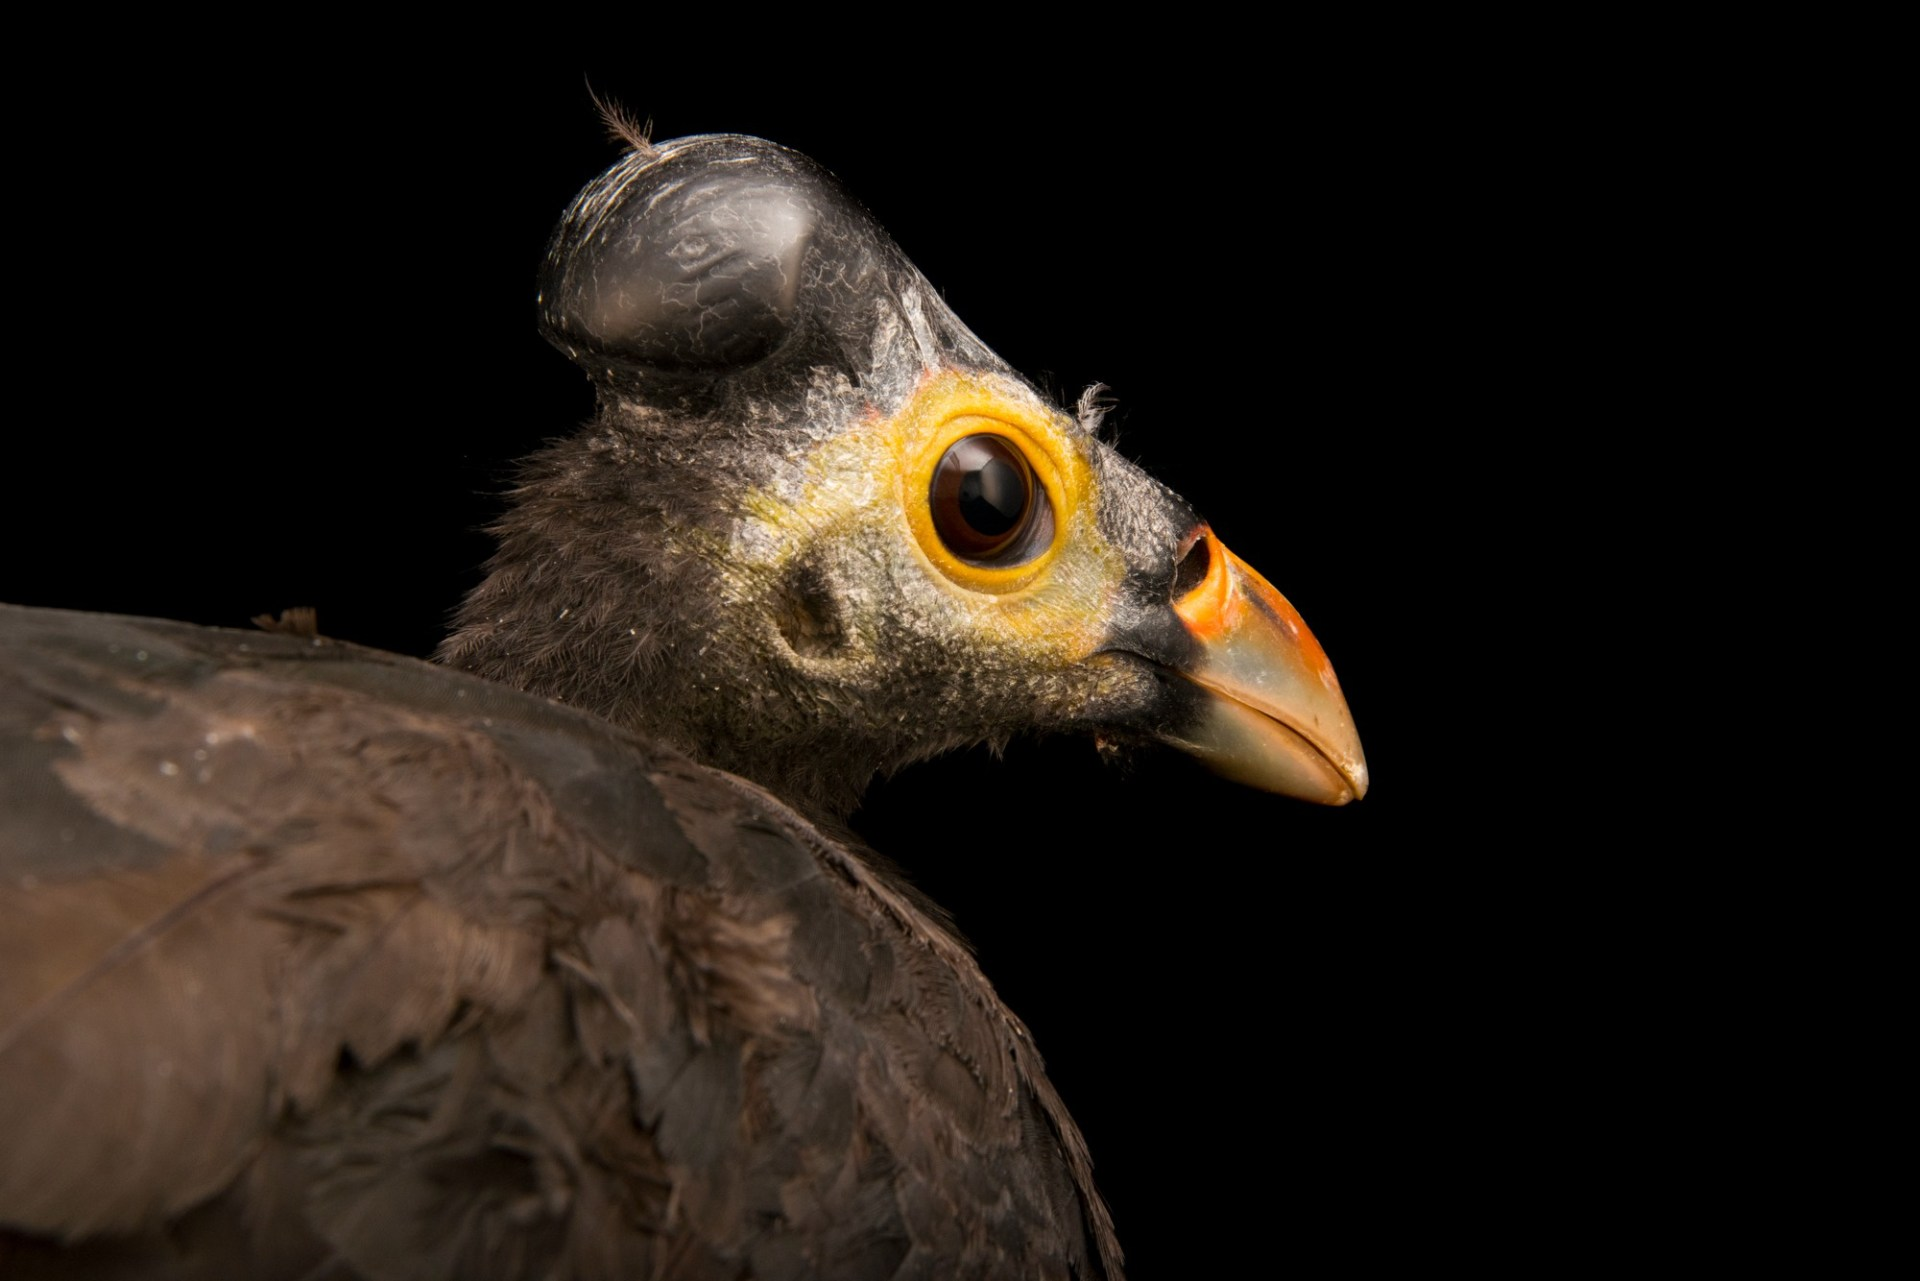 Photo: Maleo (Macrocephalon maleo) at the Houston Zoo